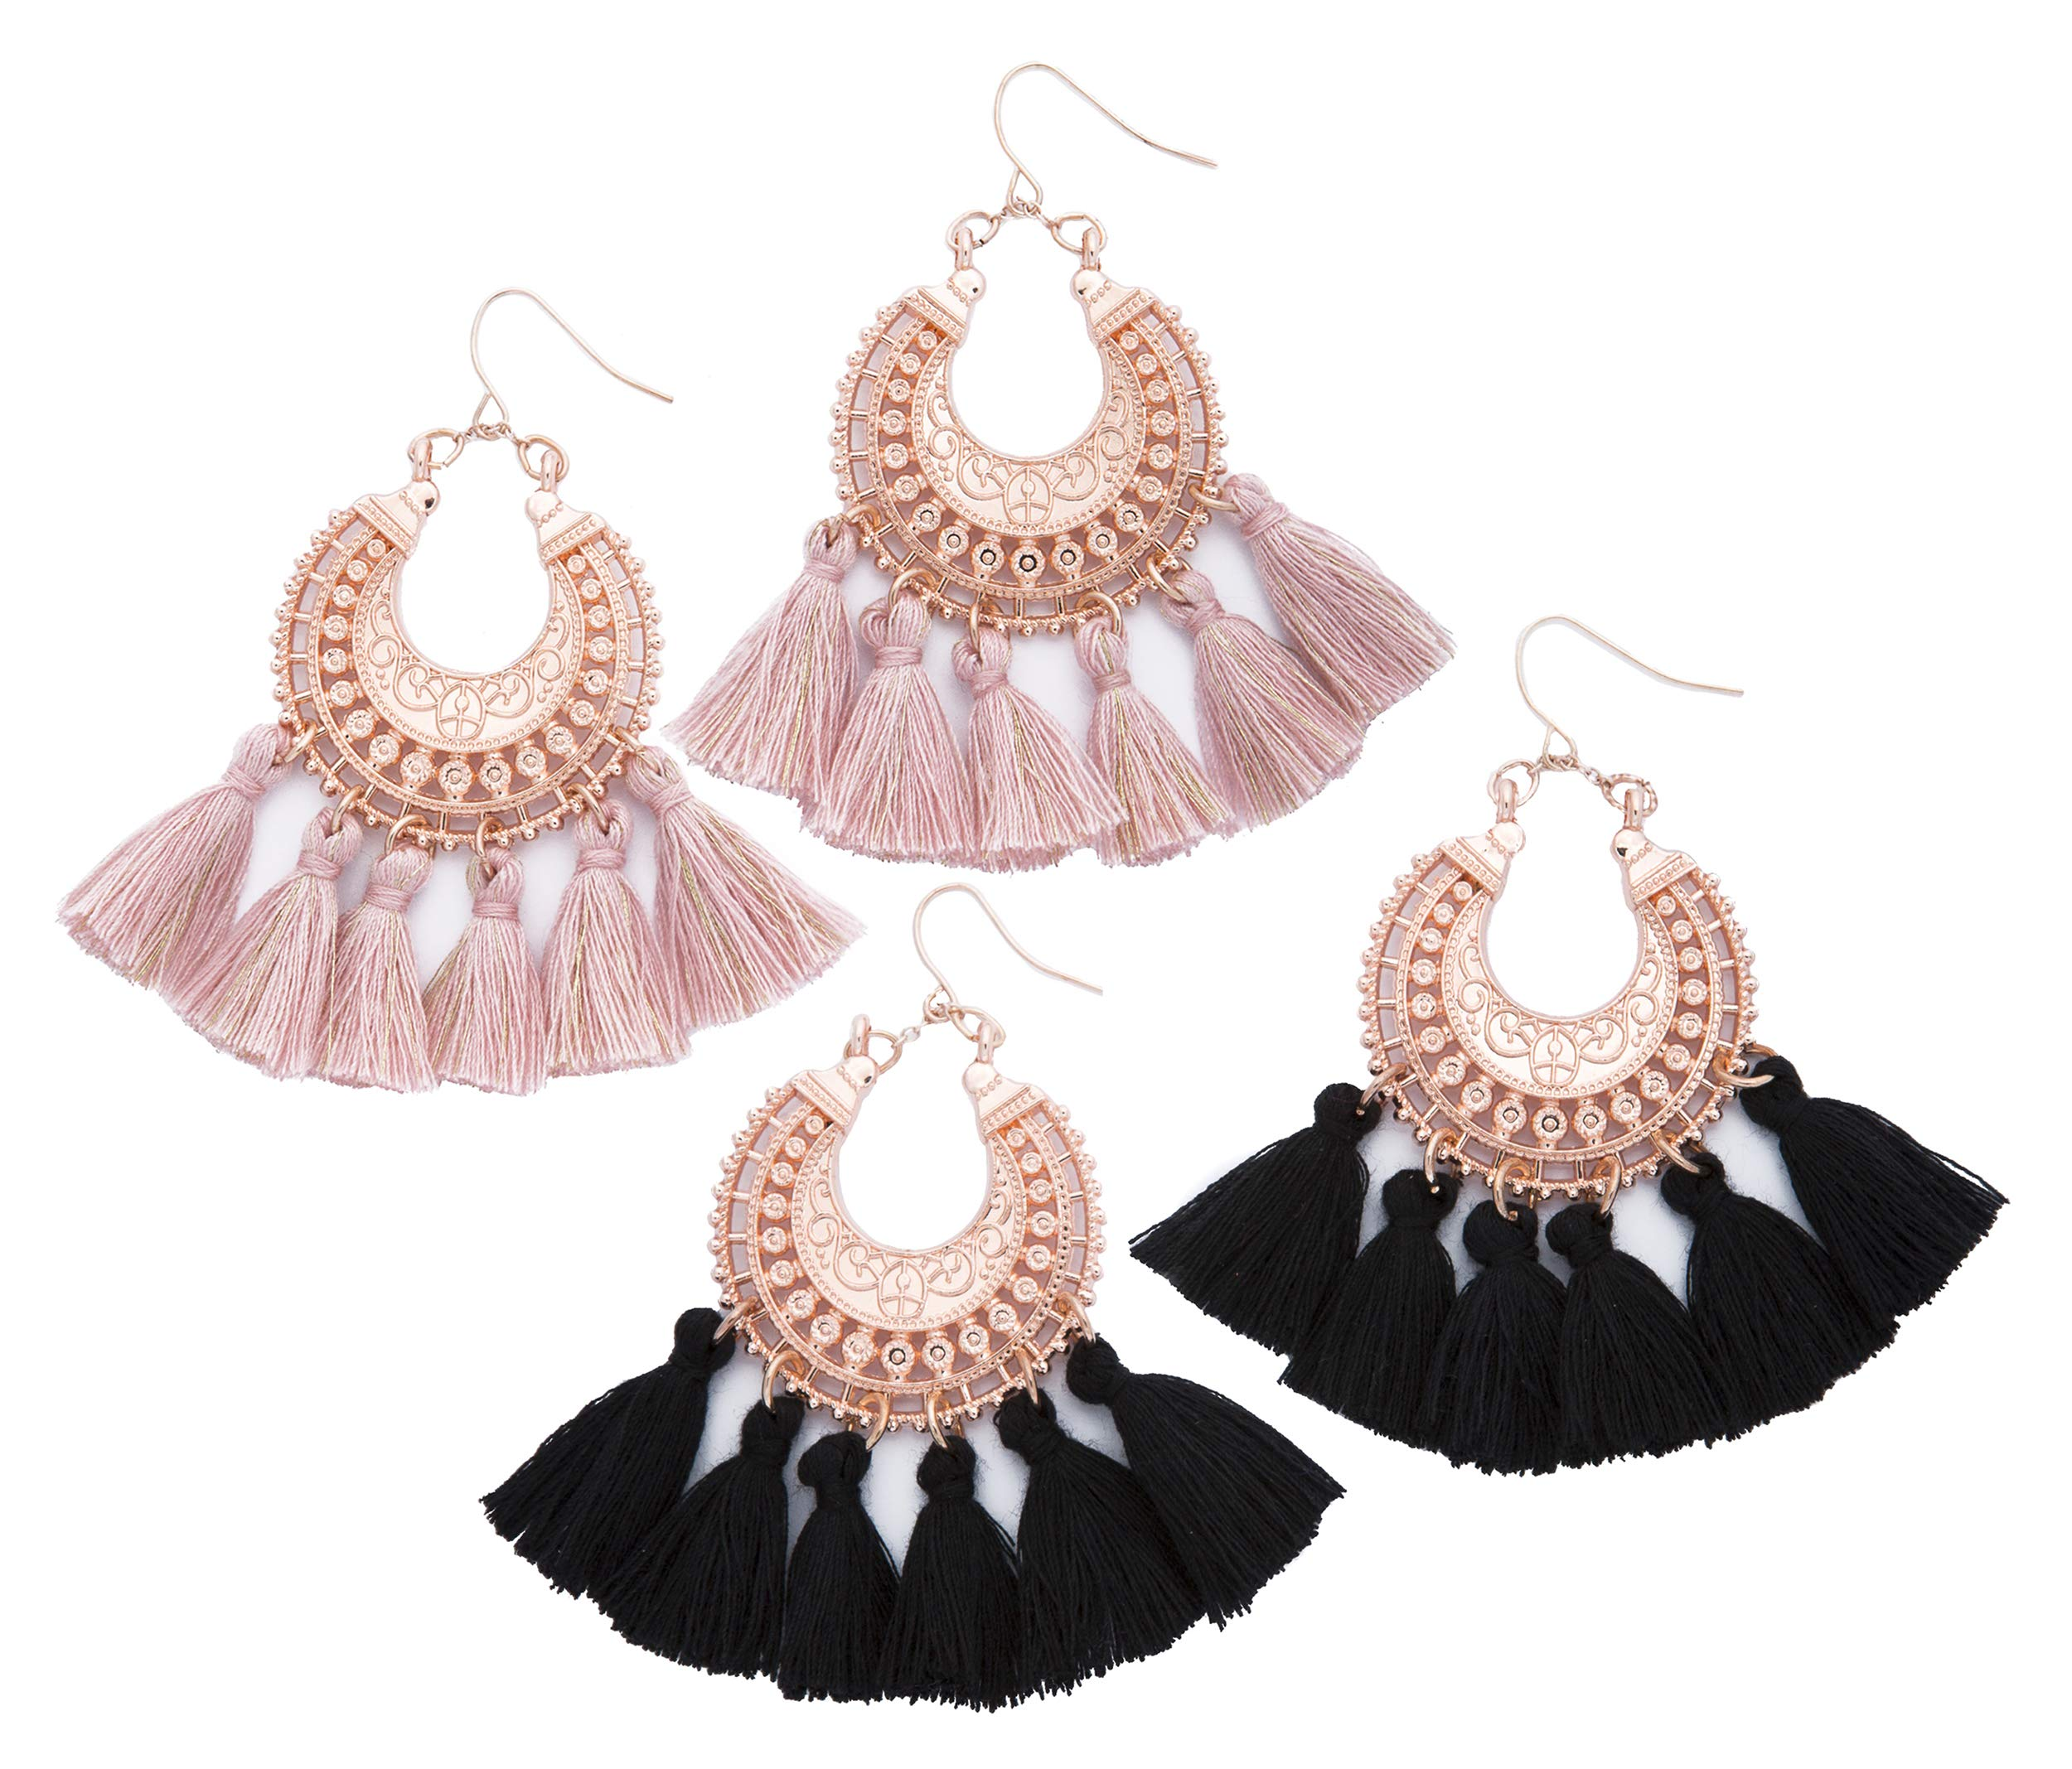 Rose Gold Pink Statement fringe fashion: tassel earrings gifts for women. Aretes de mujer drop dangle tassle summer hot earring by Blush & Co. Gift idea for birthday, wedding, friend (Blush and Black)